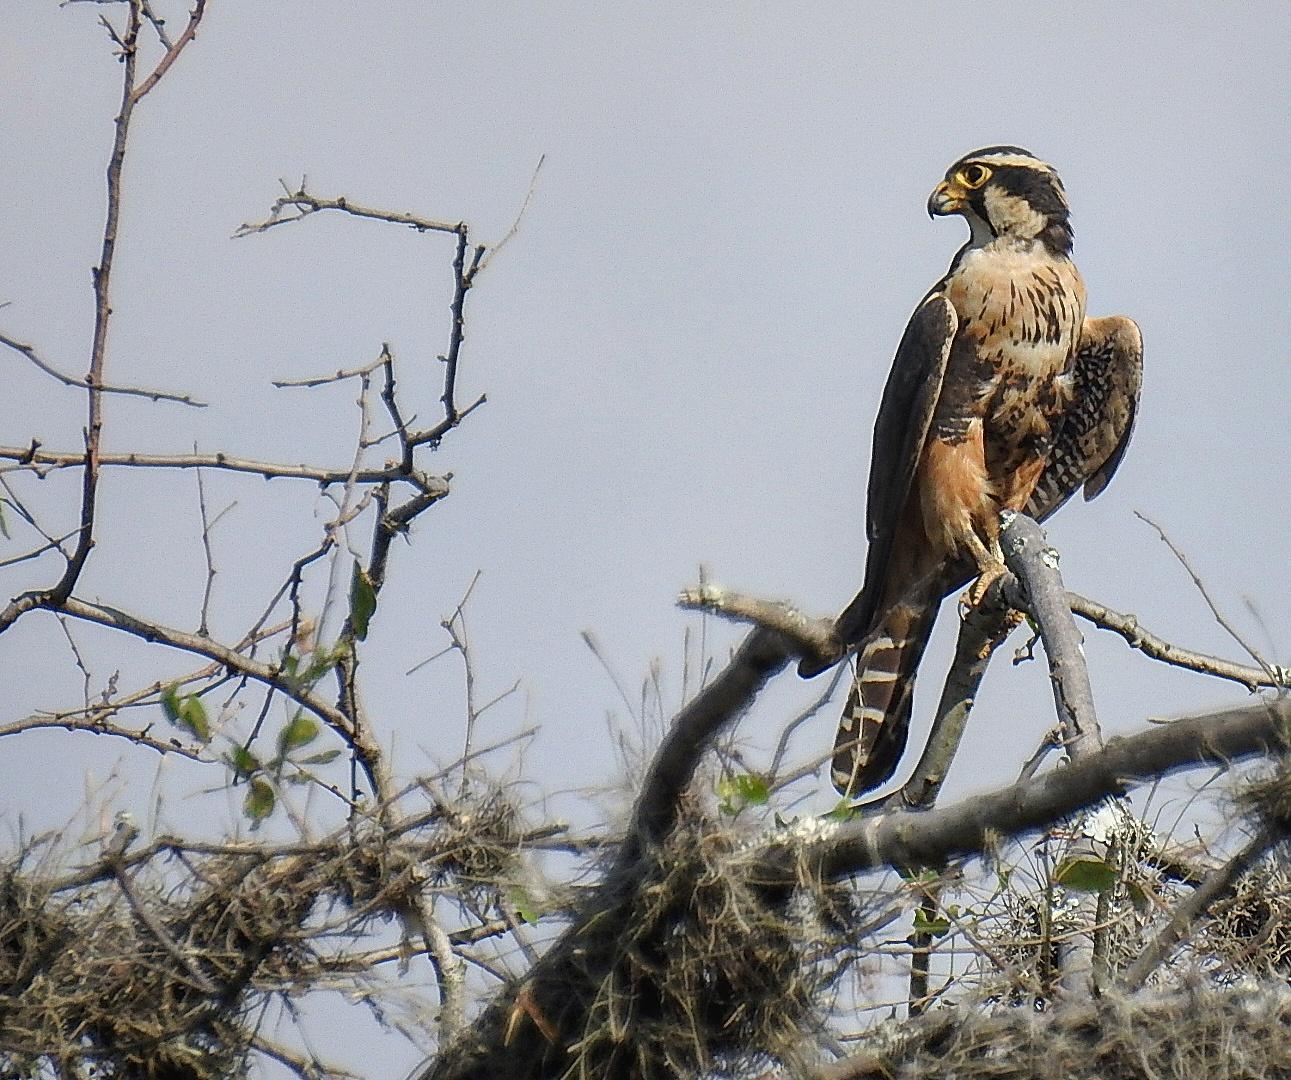 Aplomado Falcon Photo by Julio Delgado